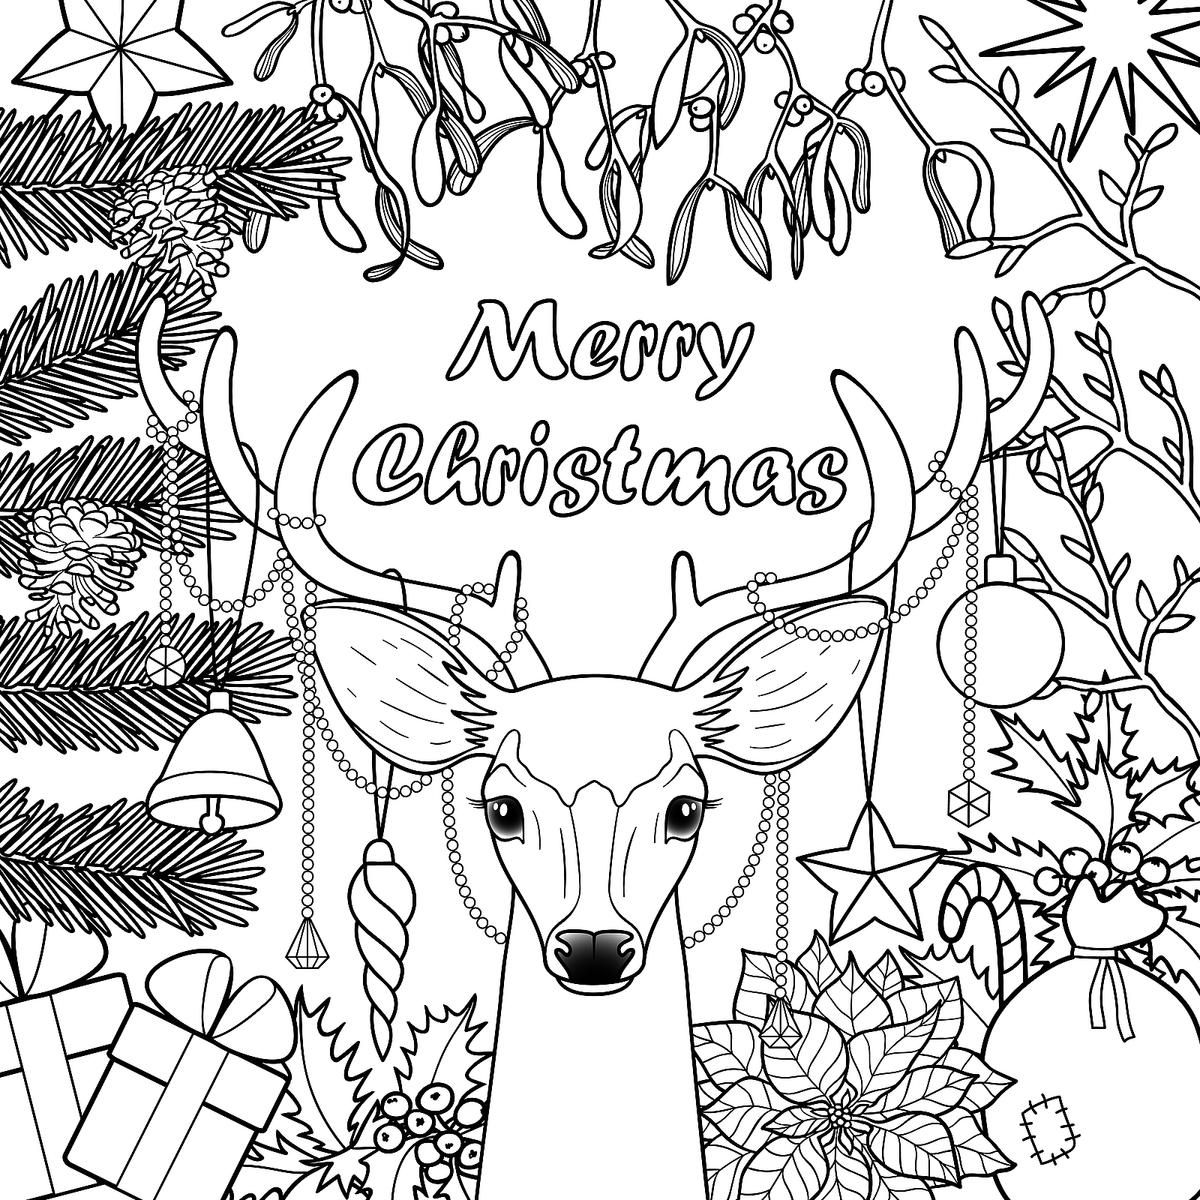 Christmas Coloring Pages Merry christmas coloring pages